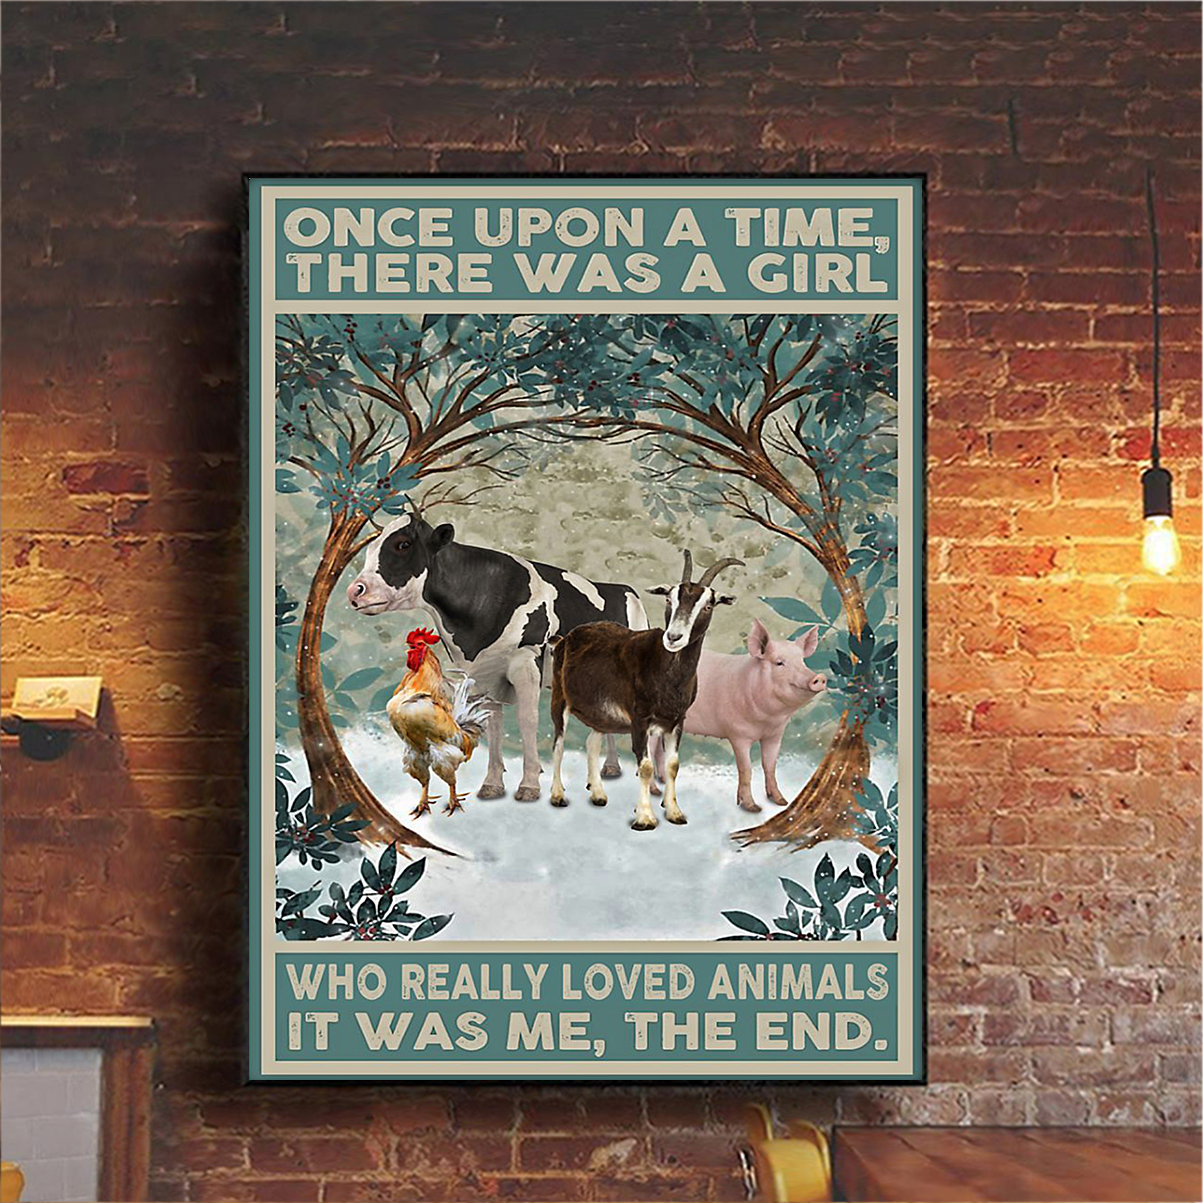 Once upon a time there was a girl who really loved animals it was me the end poster A1